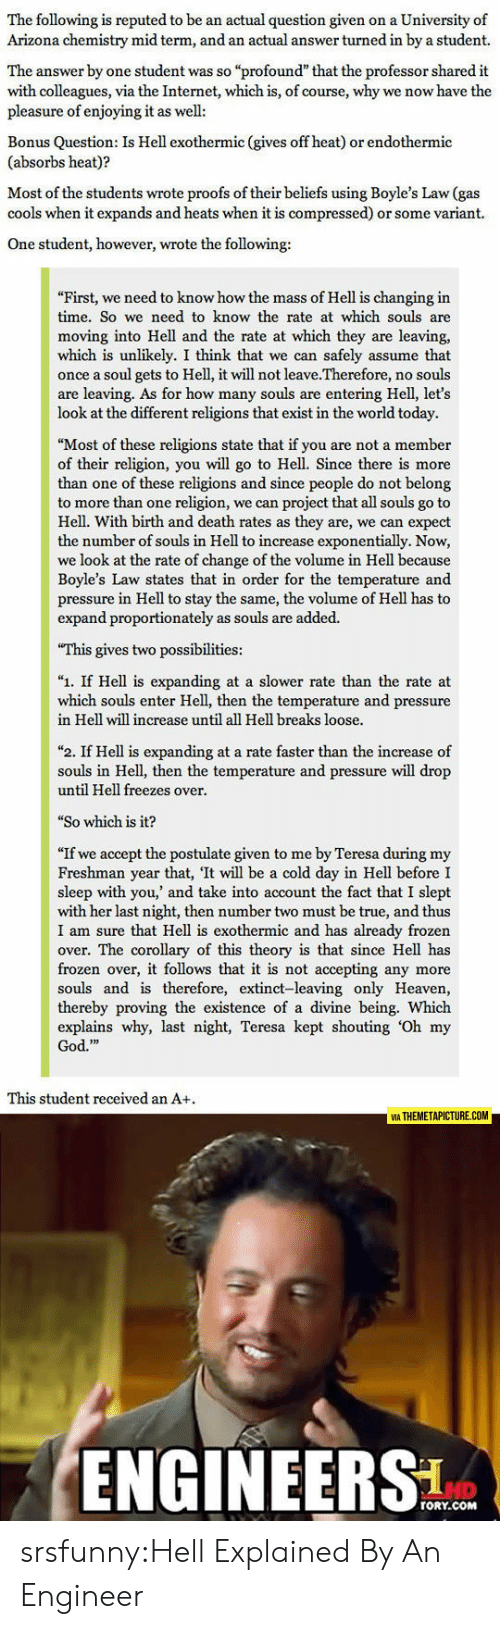 """Frozen, God, and Heaven: The following is reputed to be an actual question given on a University of  Arizona chemistry mid term, and an actual answer turned in by a student.  The answer by one student was so """"profound"""" that the professor shared it  with colleagues, via the Internet, which is, of course, why we now have the  pleasure of enjoying it as well  Bonus Question: Is Hell exothermic (gives off heat) or endothermic  (absorbs heat)?  Most of the students wrote proofs of their beliefs using Boyle's Law (gas  cools when it expands and heats when it is compressed) or some variant.  One student, however, wrote the following:  First, we need to know how the mass of Hell is changing in  time. So we need to know the rate at which souls are  moving into Hell and the rate at which they are leaving,  which is unlikely. I think that we can safely assume that  once a soul gets to Hell, it will not leave.Therefore, no souls  are leaving. As for how many souls are entering Hell, let's  look at the different religions that exist in the world today.  """"Most of these religions state that if you are not a member  of their religion, you will go to Hell. Since there is more  than one of these religions and since people do not belong  to more than one religion, we can project that all souls go to  Hell. With birth and death rates as they are, we can expect  the number of souls in Hell to increase exponentially. Now,  we look at the rate of change of the volume in Hell because  Boyle's Law states that in order for the temperature and  pressure in Hell to stay the same, the volume of Hell has to  expand proportionately as souls are added.  This gives two possibilities:  """"1. If Hell is expanding at a slower rate than the rate at  which souls enter Hell, then the temperature and pressure  in Hell will increase until all Hell breaks loose.  """"2. If Hell is expanding at a rate faster than the increase of  souls in Hell, then the temperature and pressure will drop  until Hell freezes over """